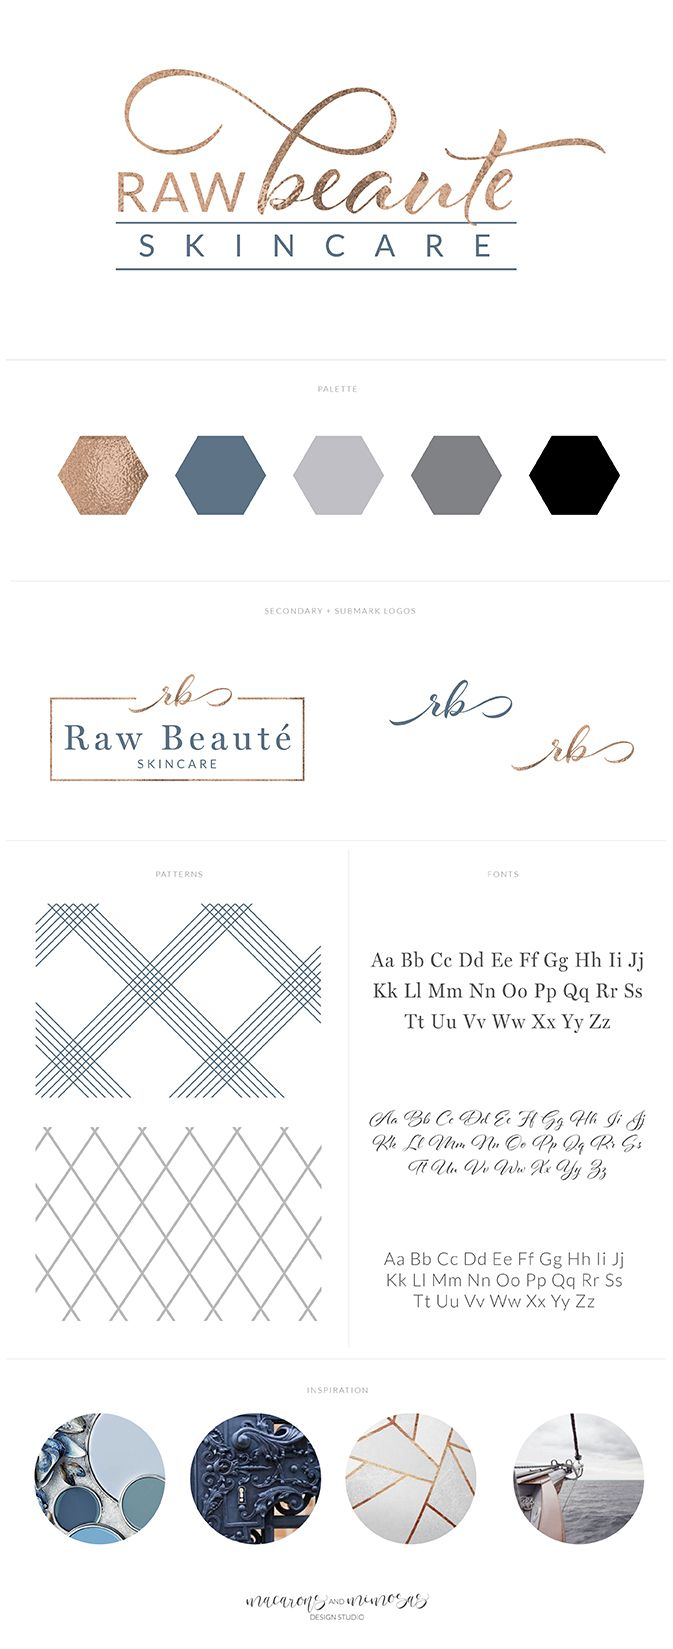 skincare logo branding, blue copper navy blue brand board, health and wellness logo, spa logo. navy, gold, turquoise, logo design, stationery, marble, botanical